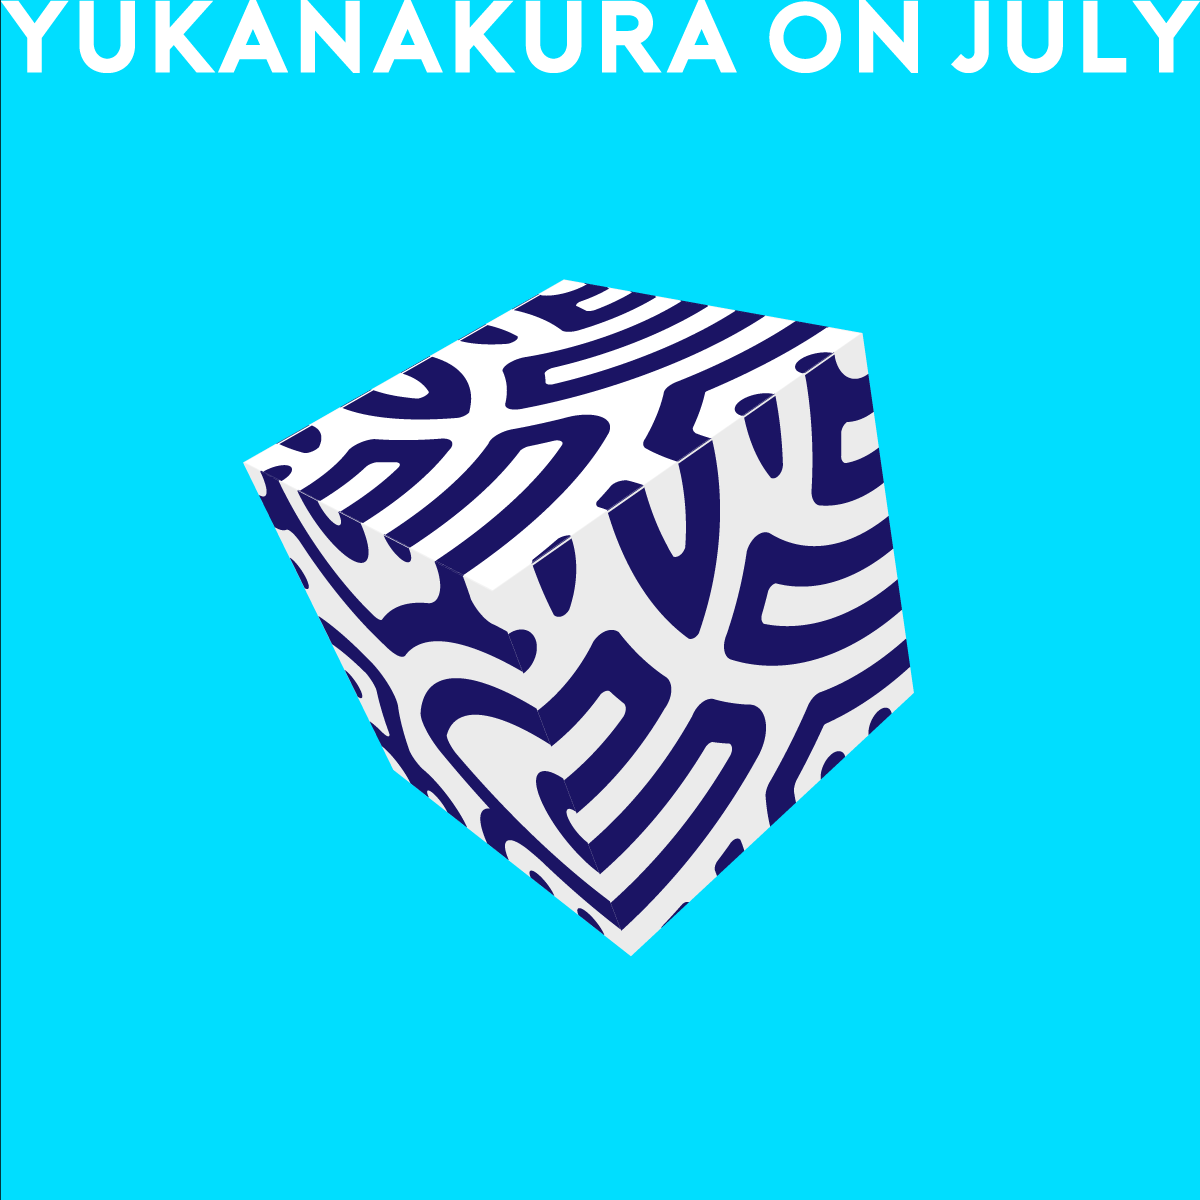 yukanakura_on_july